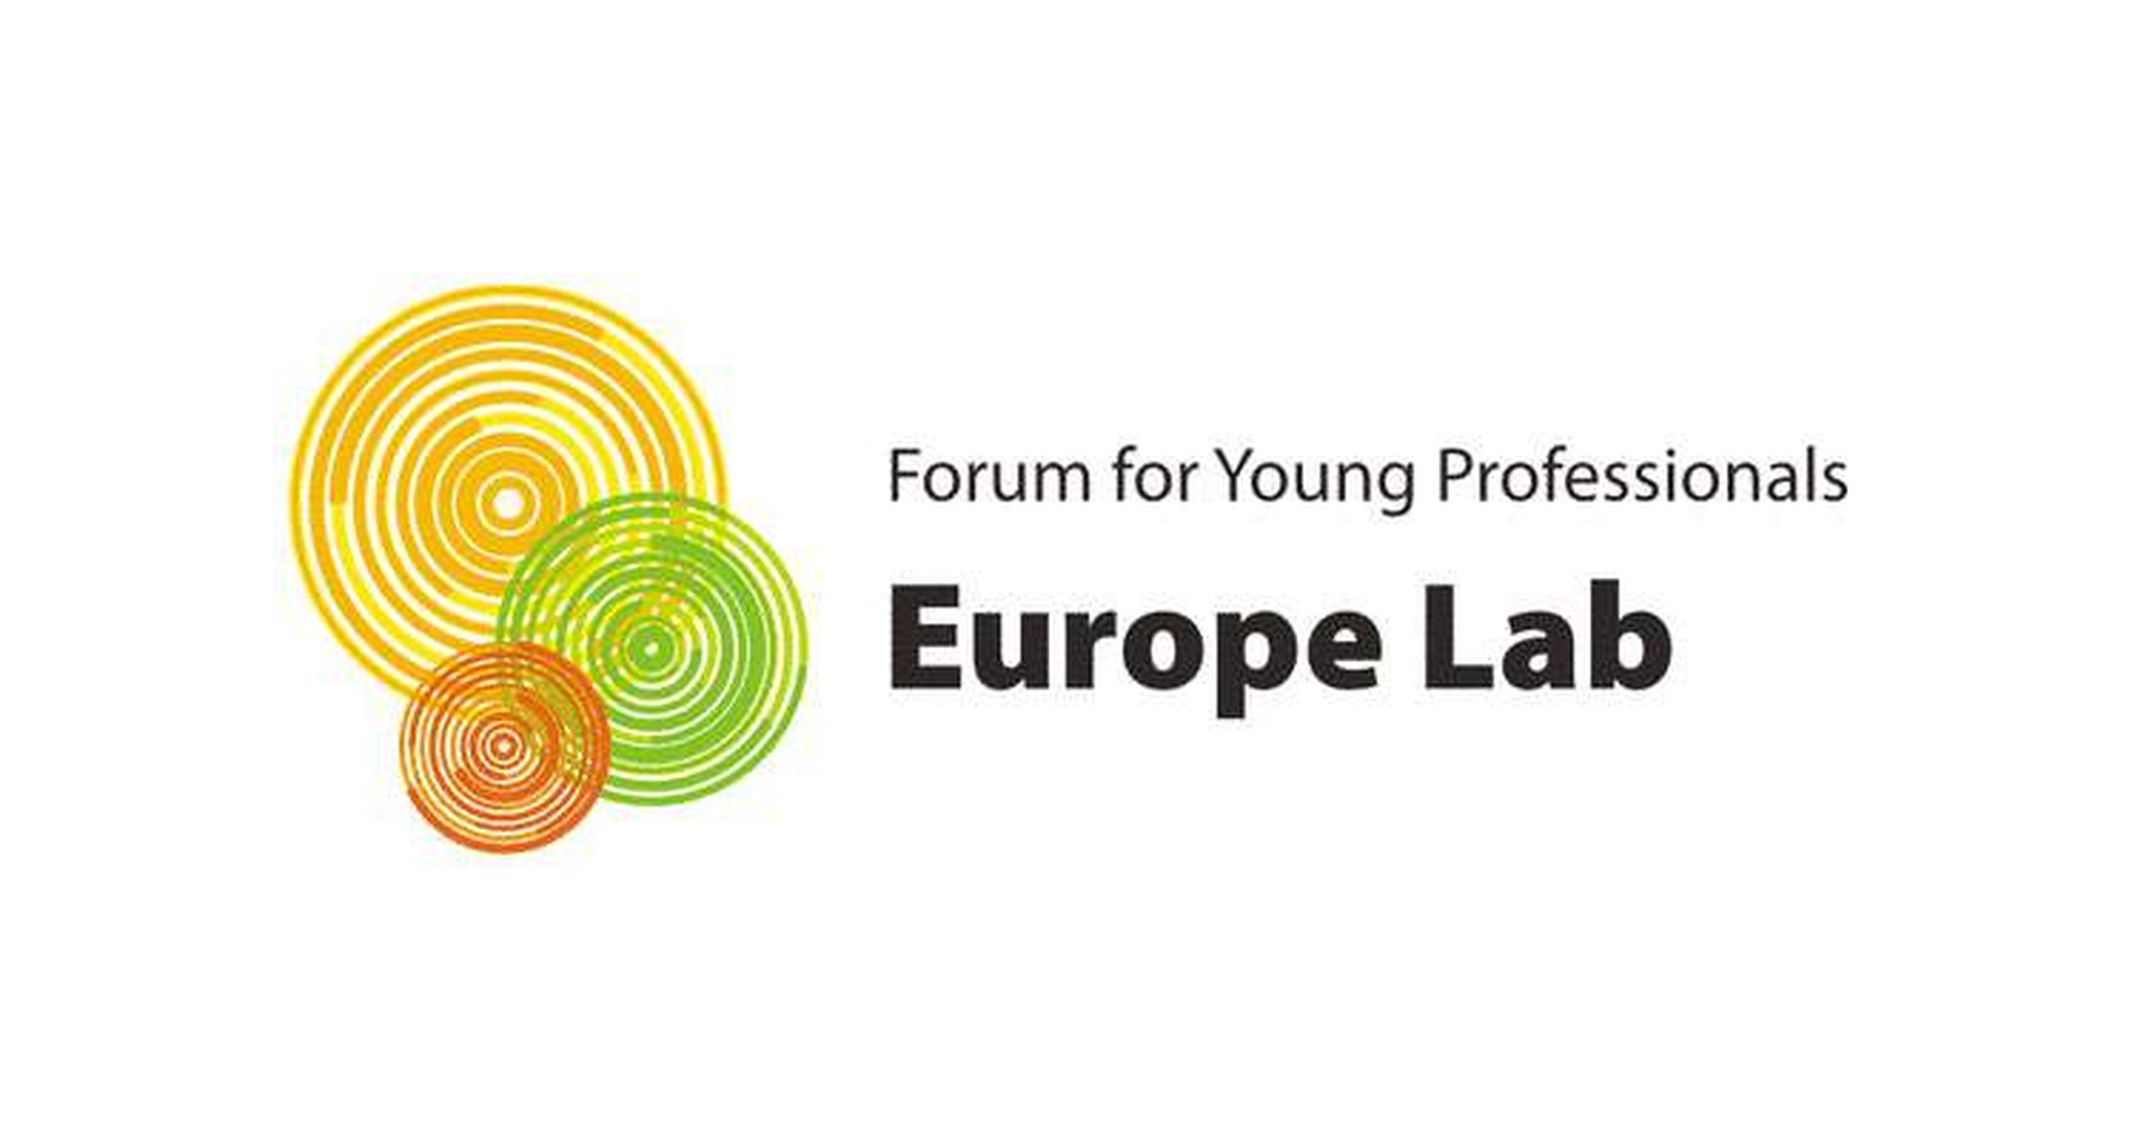 Deadline for applications to the Europe Lab is 1 May